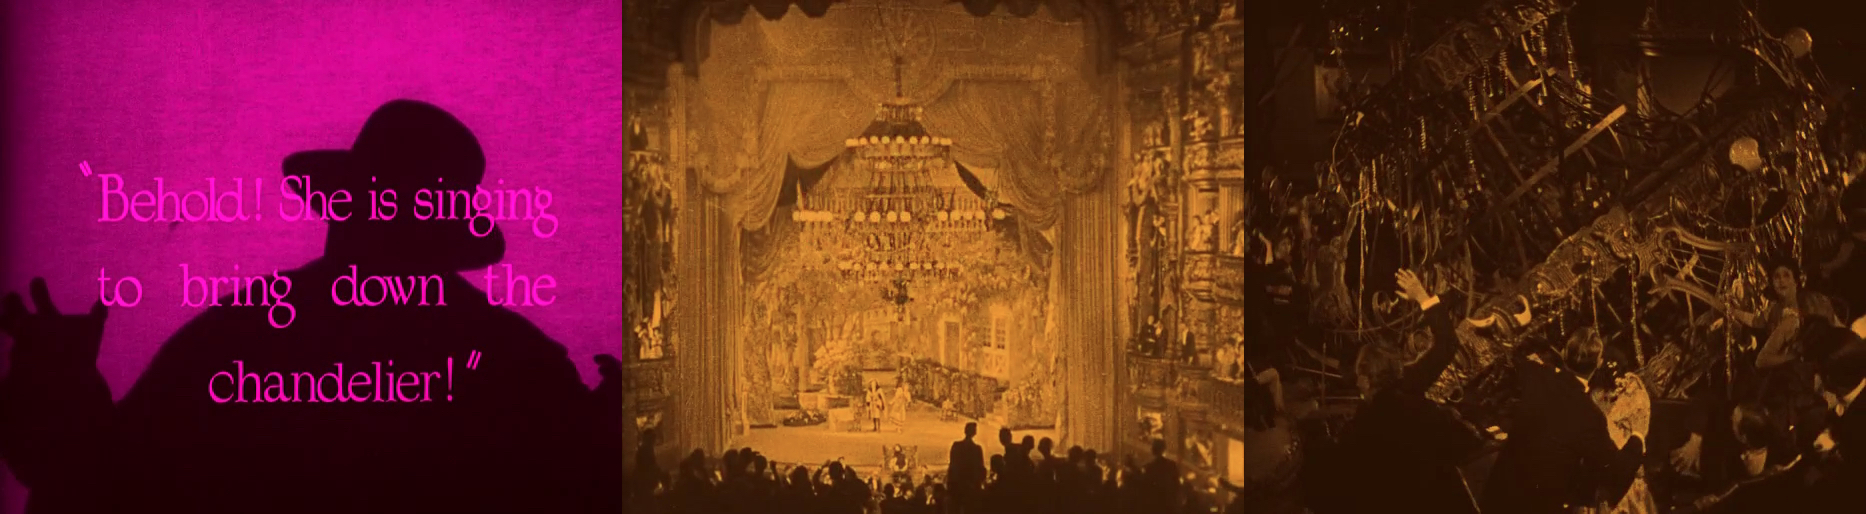 The Sequence In Which Opera House Chandelier Crashes Into Audience Is A Memorable Moment